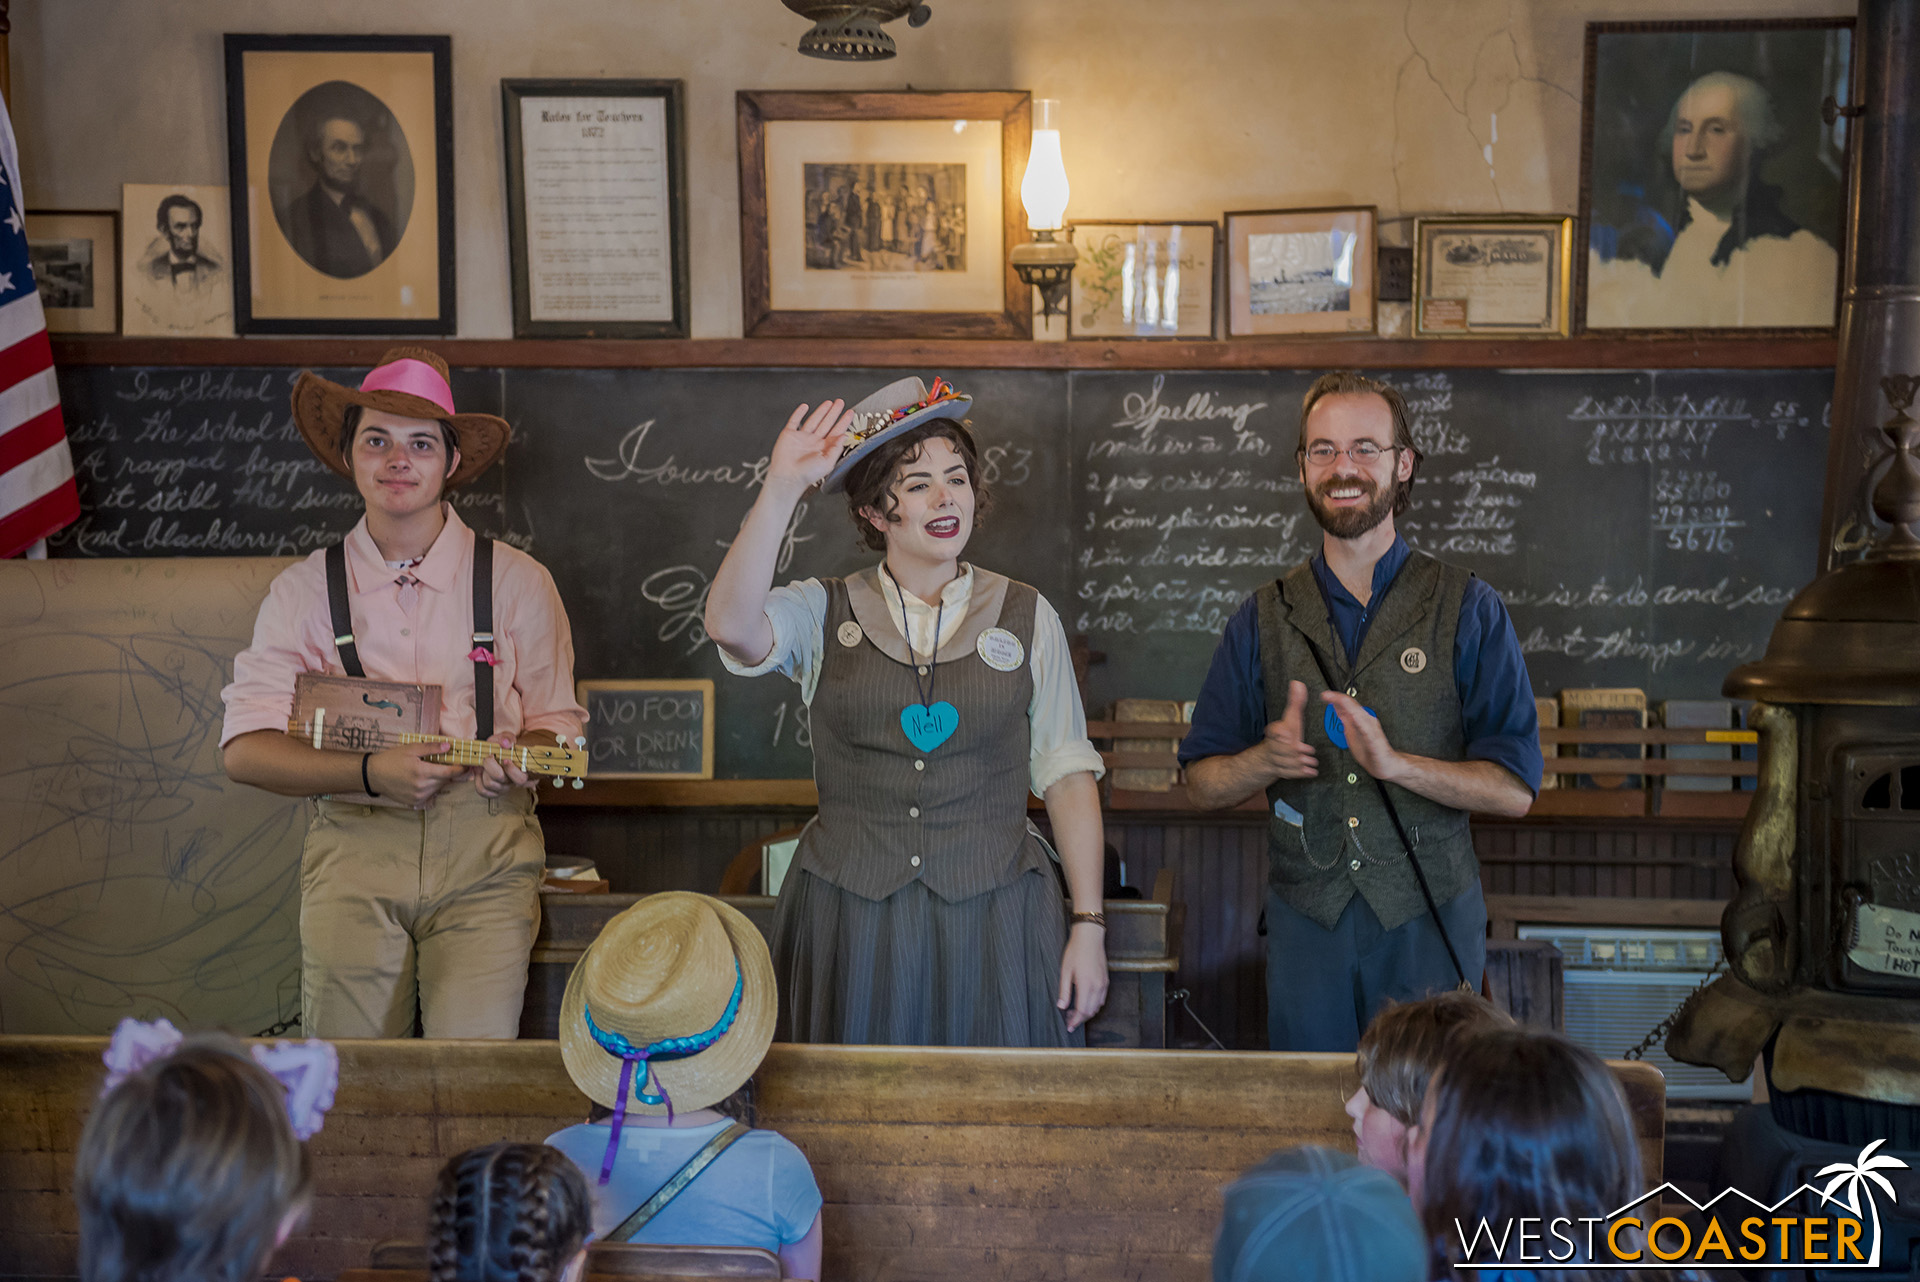 A lesson at the Schoolhouse.